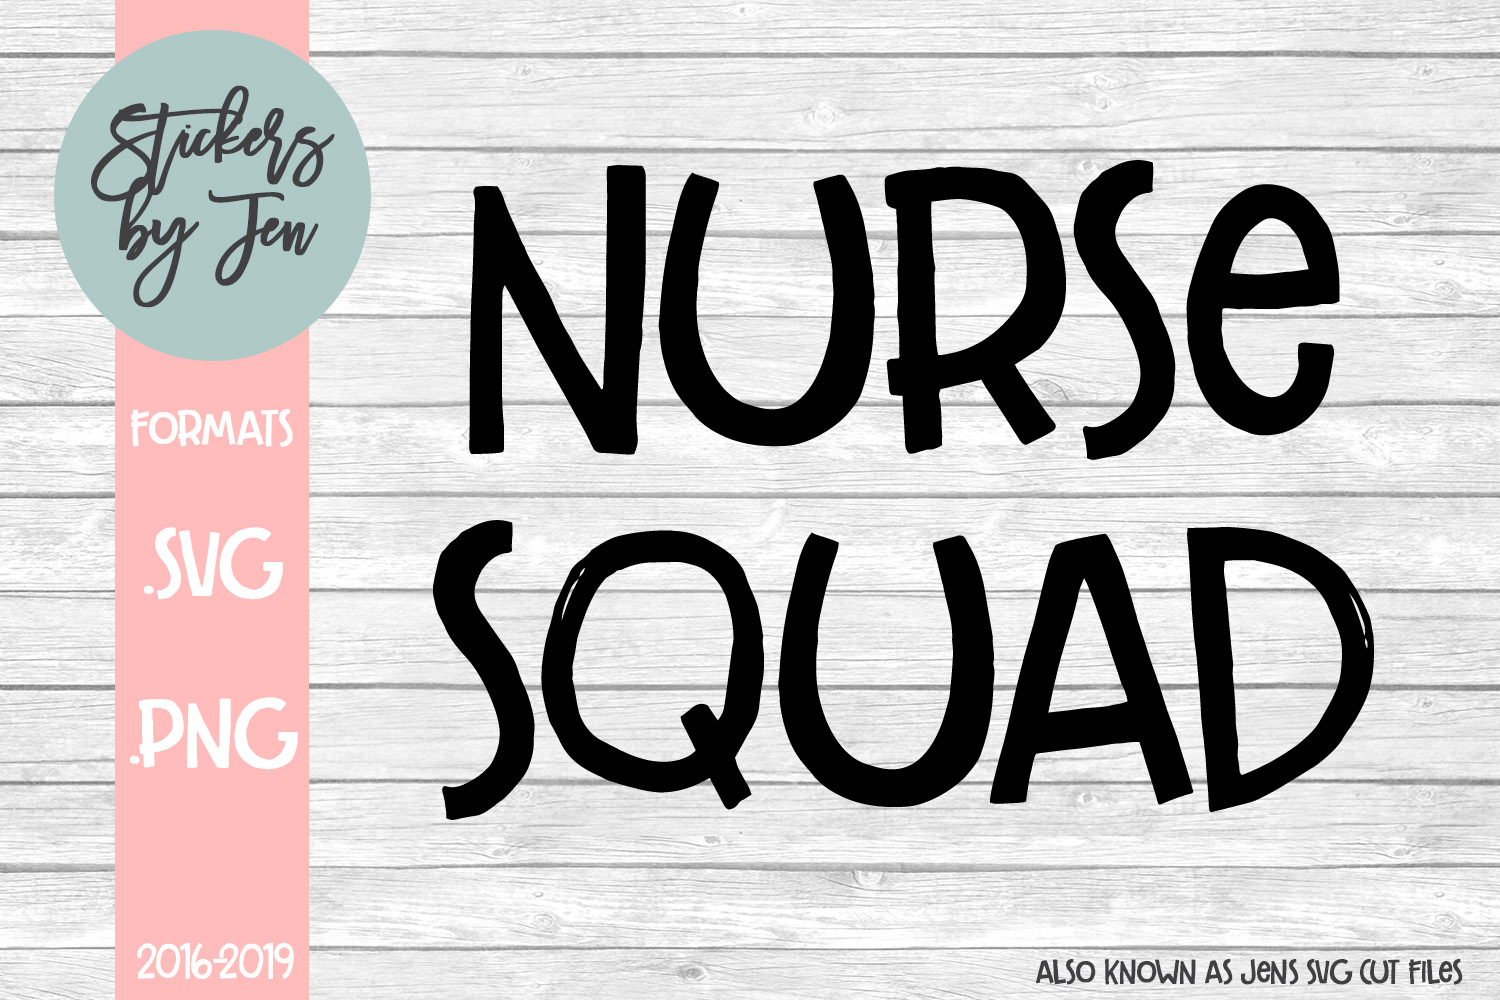 Download Free Nurse Squad Svg Graphic By Stickers By Jennifer Creative Fabrica for Cricut Explore, Silhouette and other cutting machines.